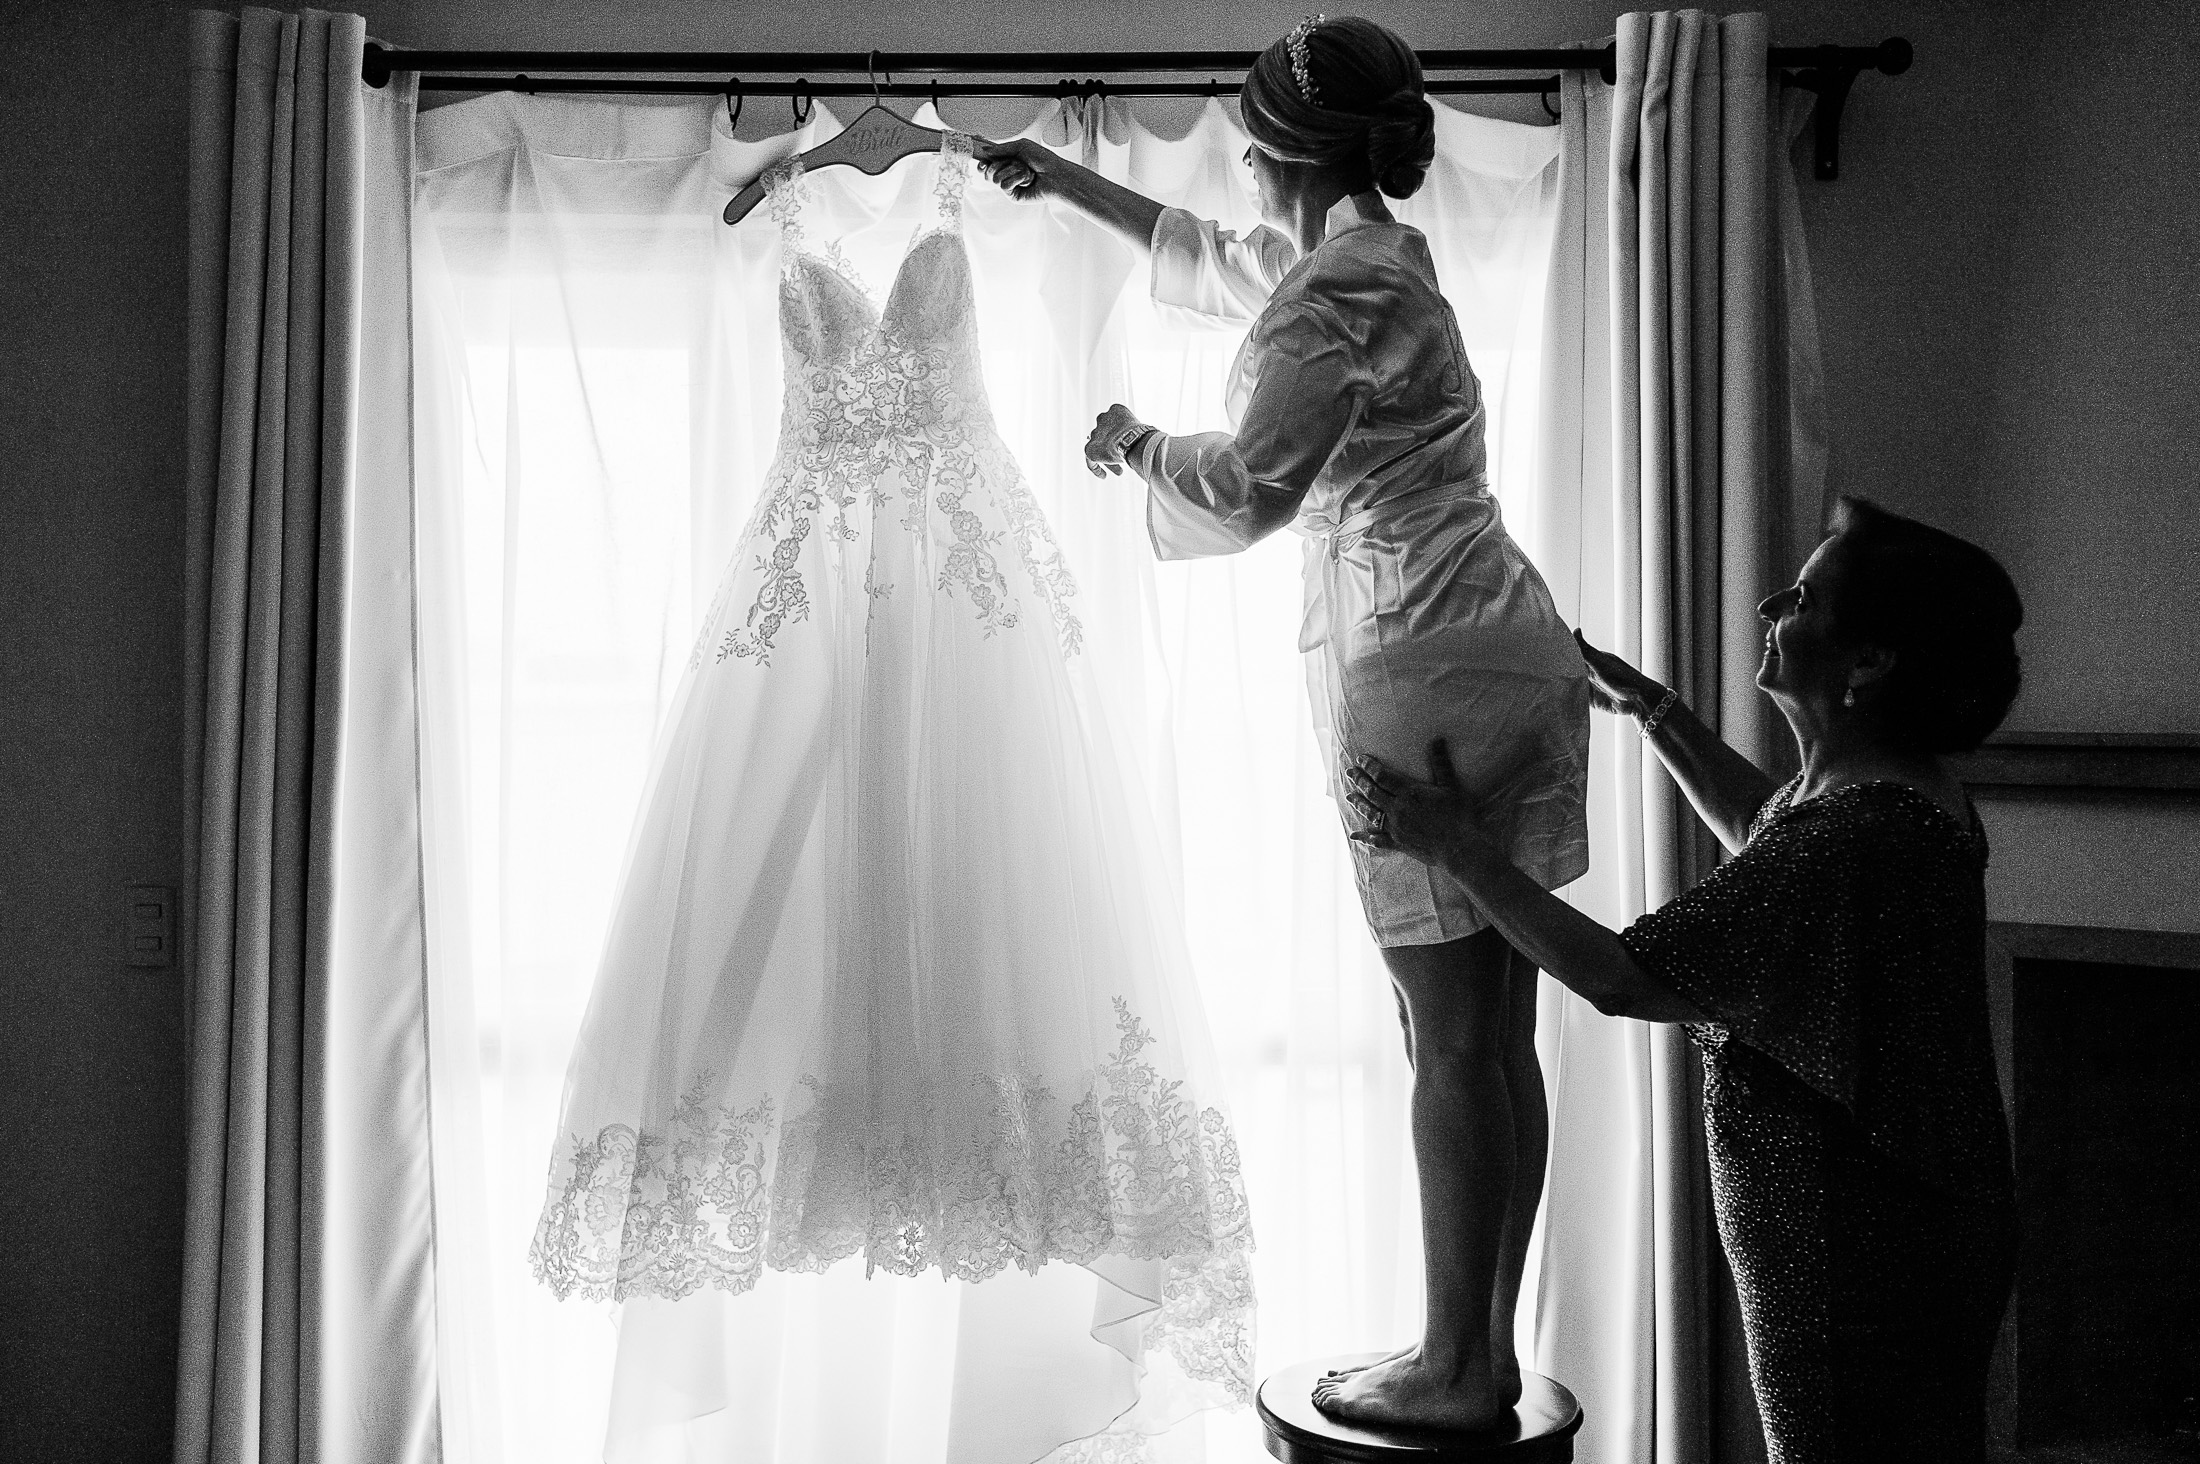 Bride hanging dress from the window Mom helping